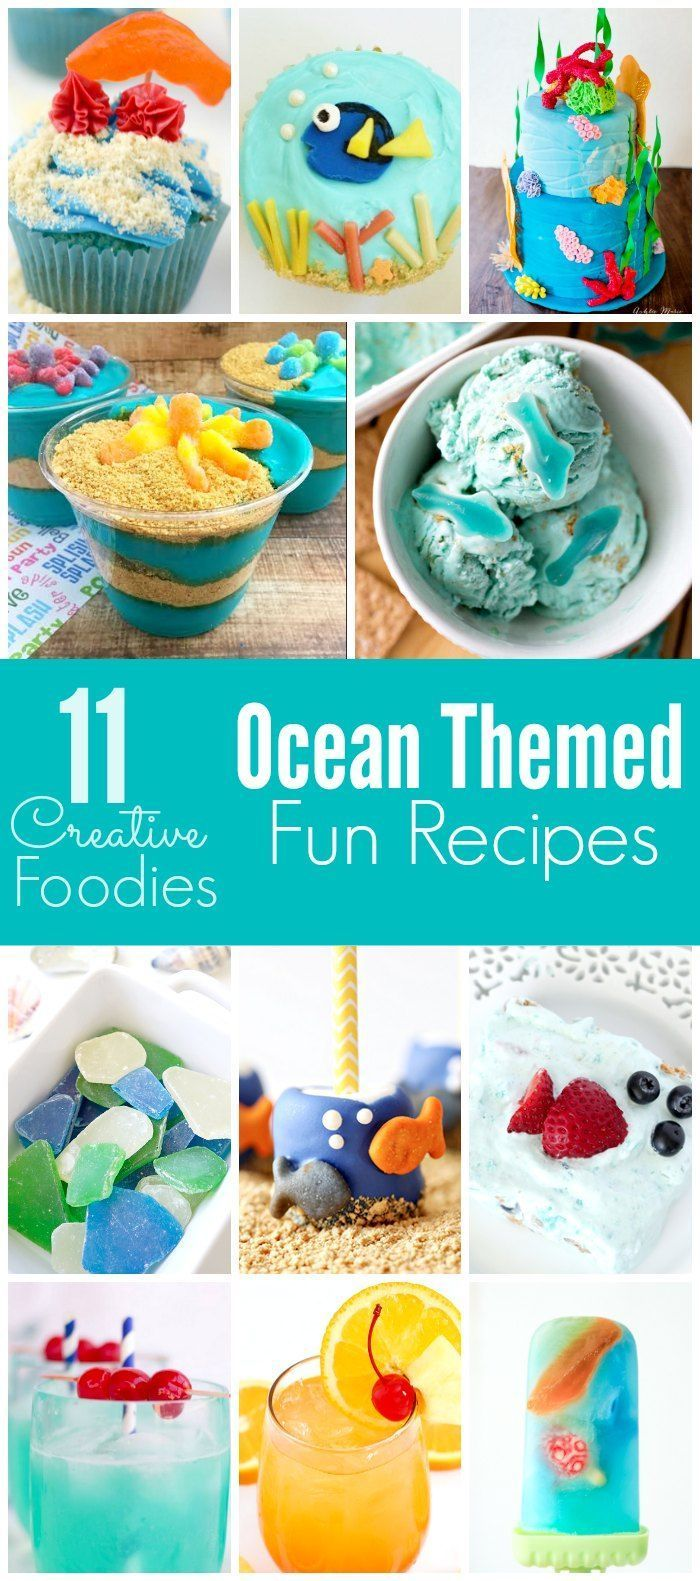 Ten Ocean Themed Recipes and party food